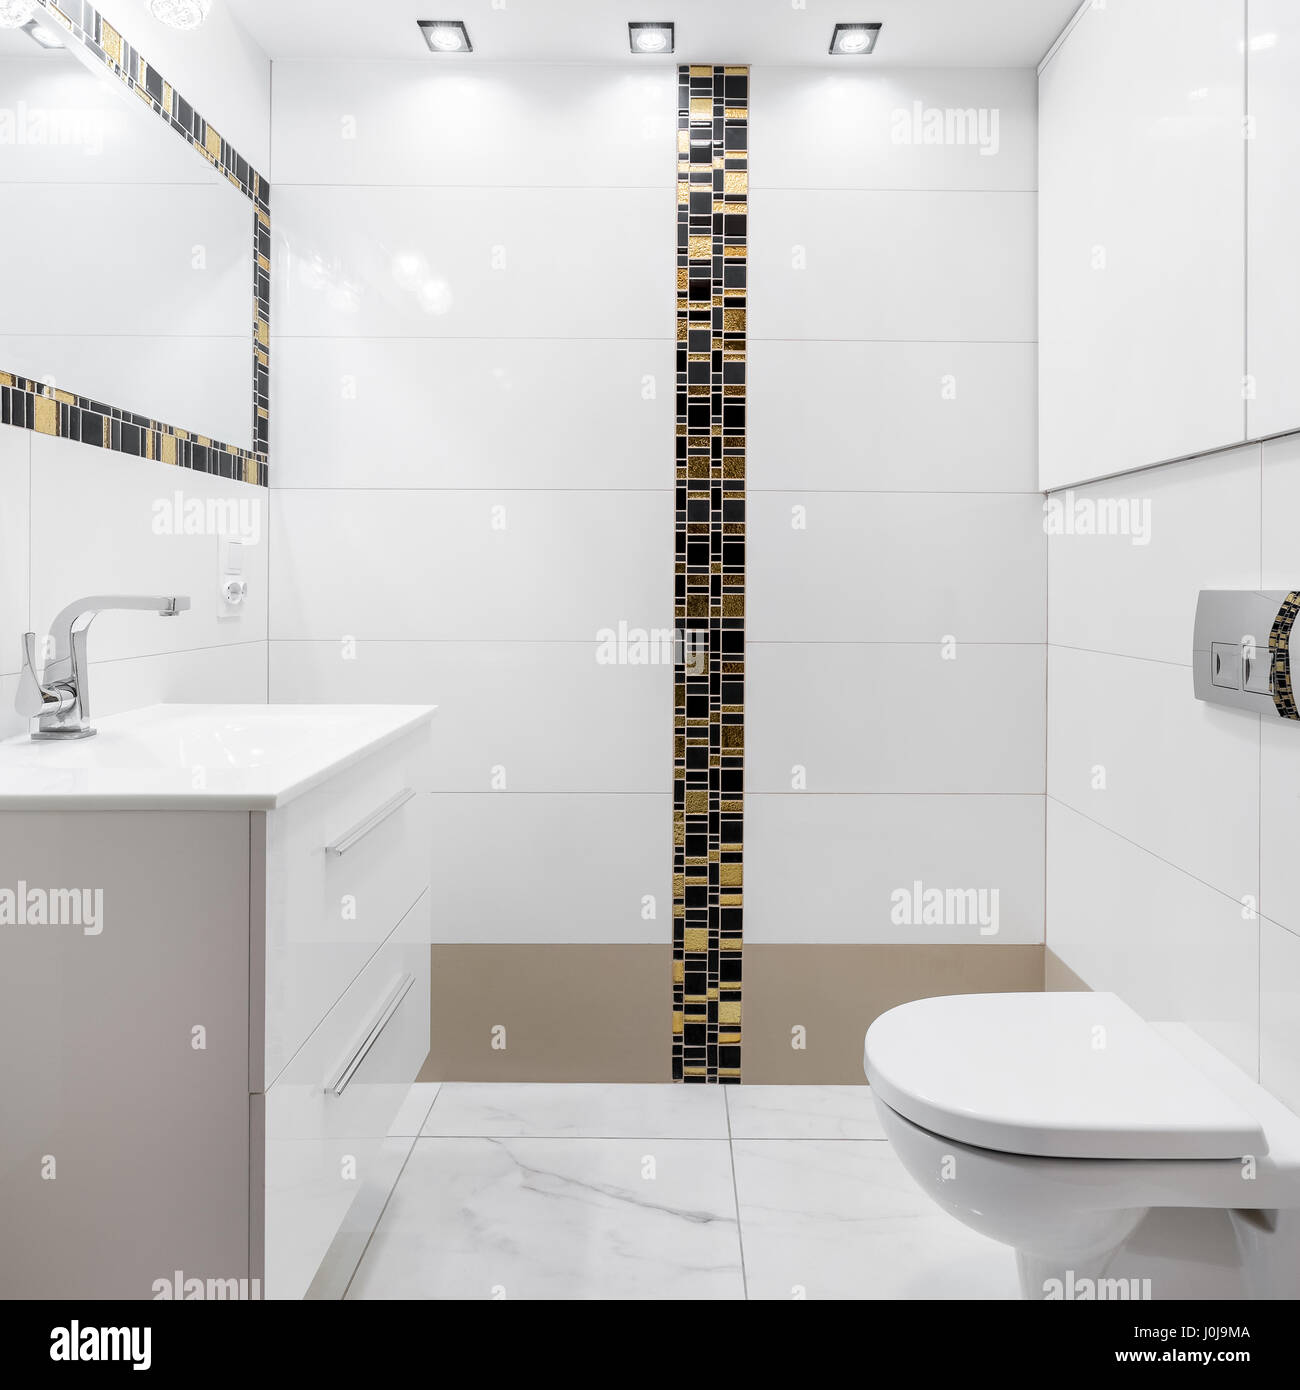 Luxury designed bathroom with modern ceramic tiles and rectangular ...